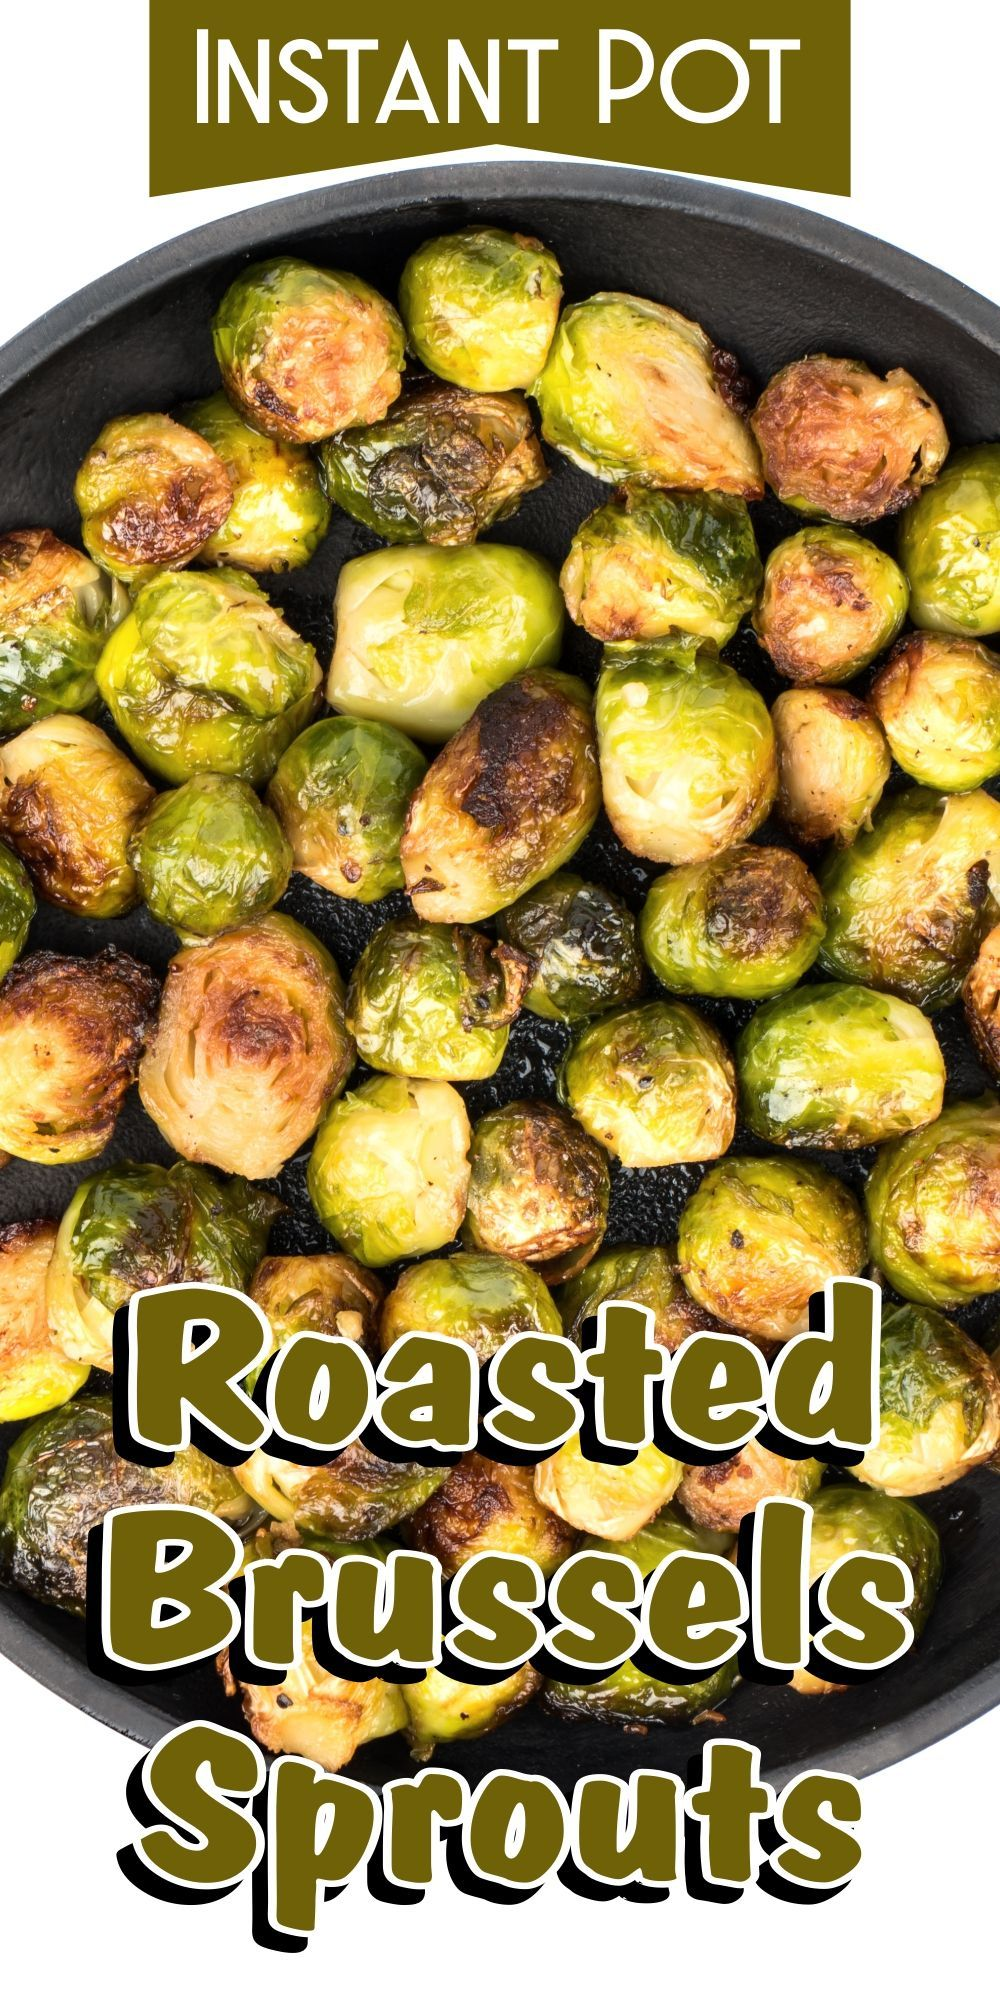 Instant Pot Roasted Brussels Sprouts Recipe Vegetarian Instant Pot Instant Pot Veggies Instant Pot Dinner Recipes